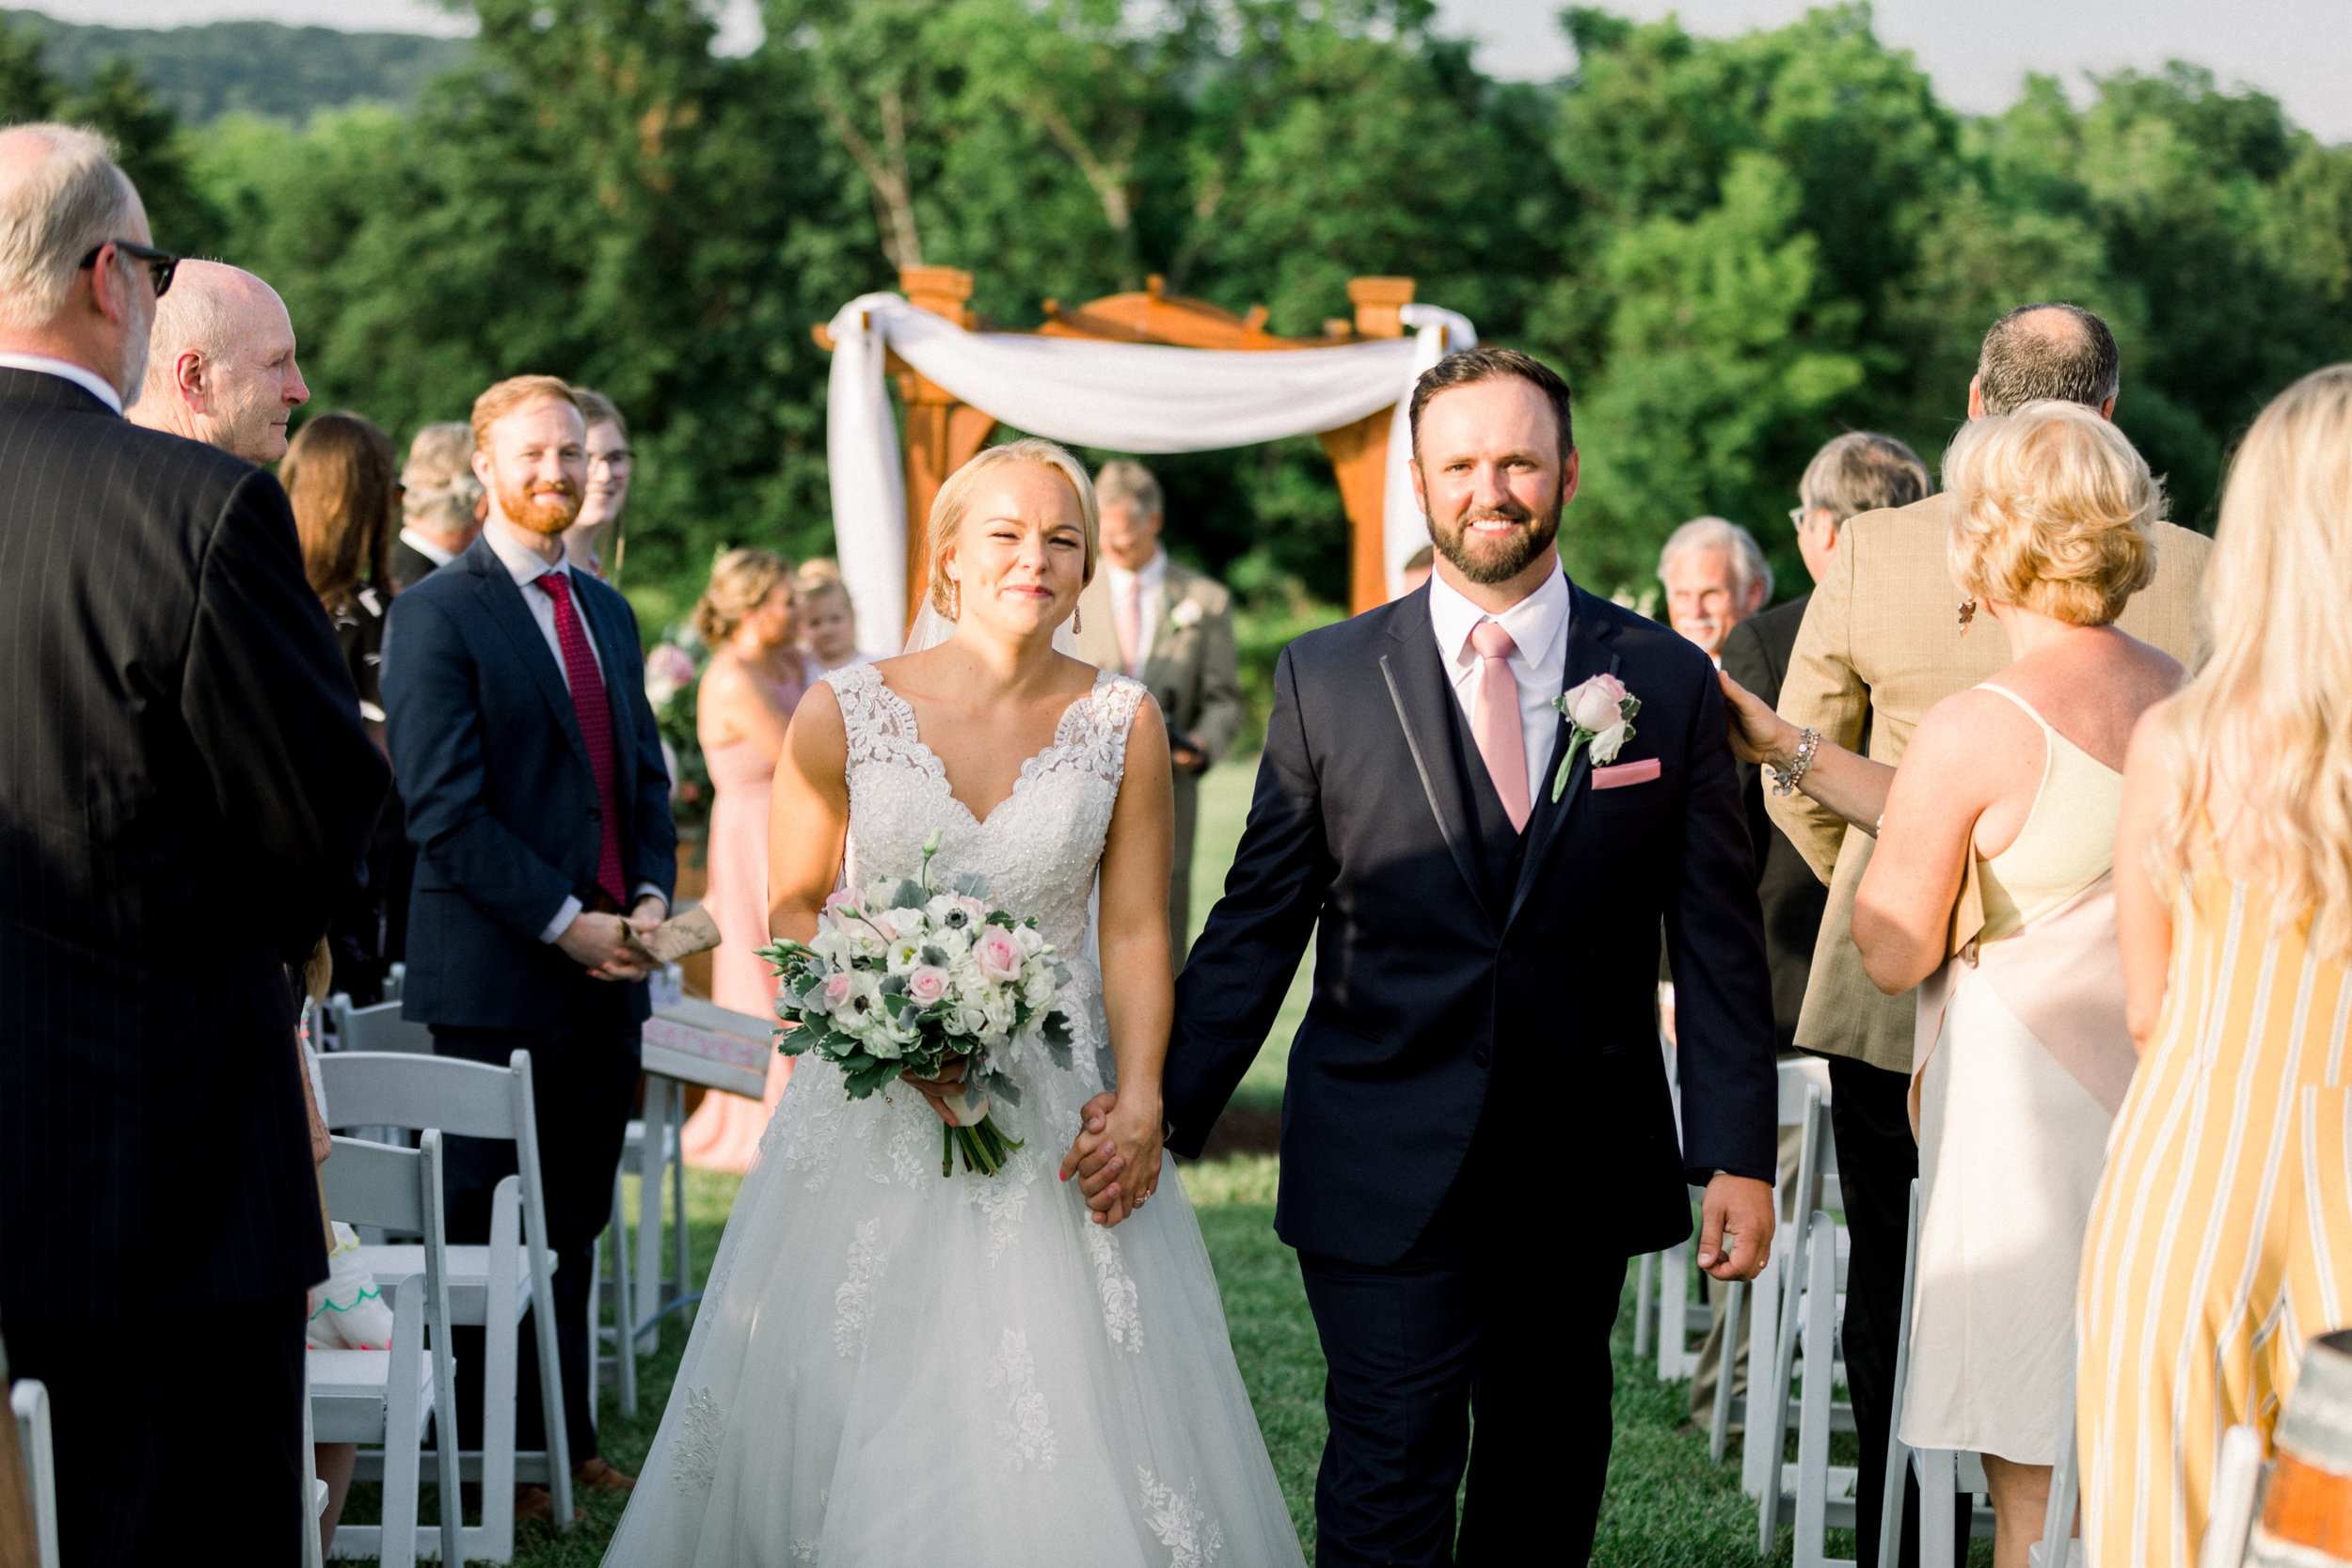 Molly + Dan wedding 6-7-19 (627 of 916).jpg